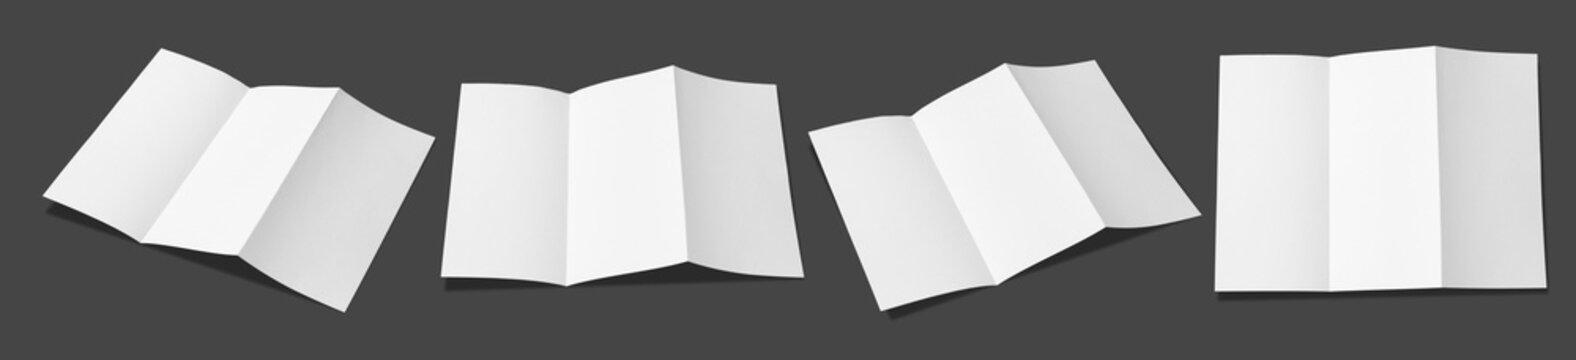 Leaflet folded white paper really,Fold in three parts,Open leaflet in square format.Empty paper sheet in A4 size isolated on gray background. Flat ray papers ,studio shot